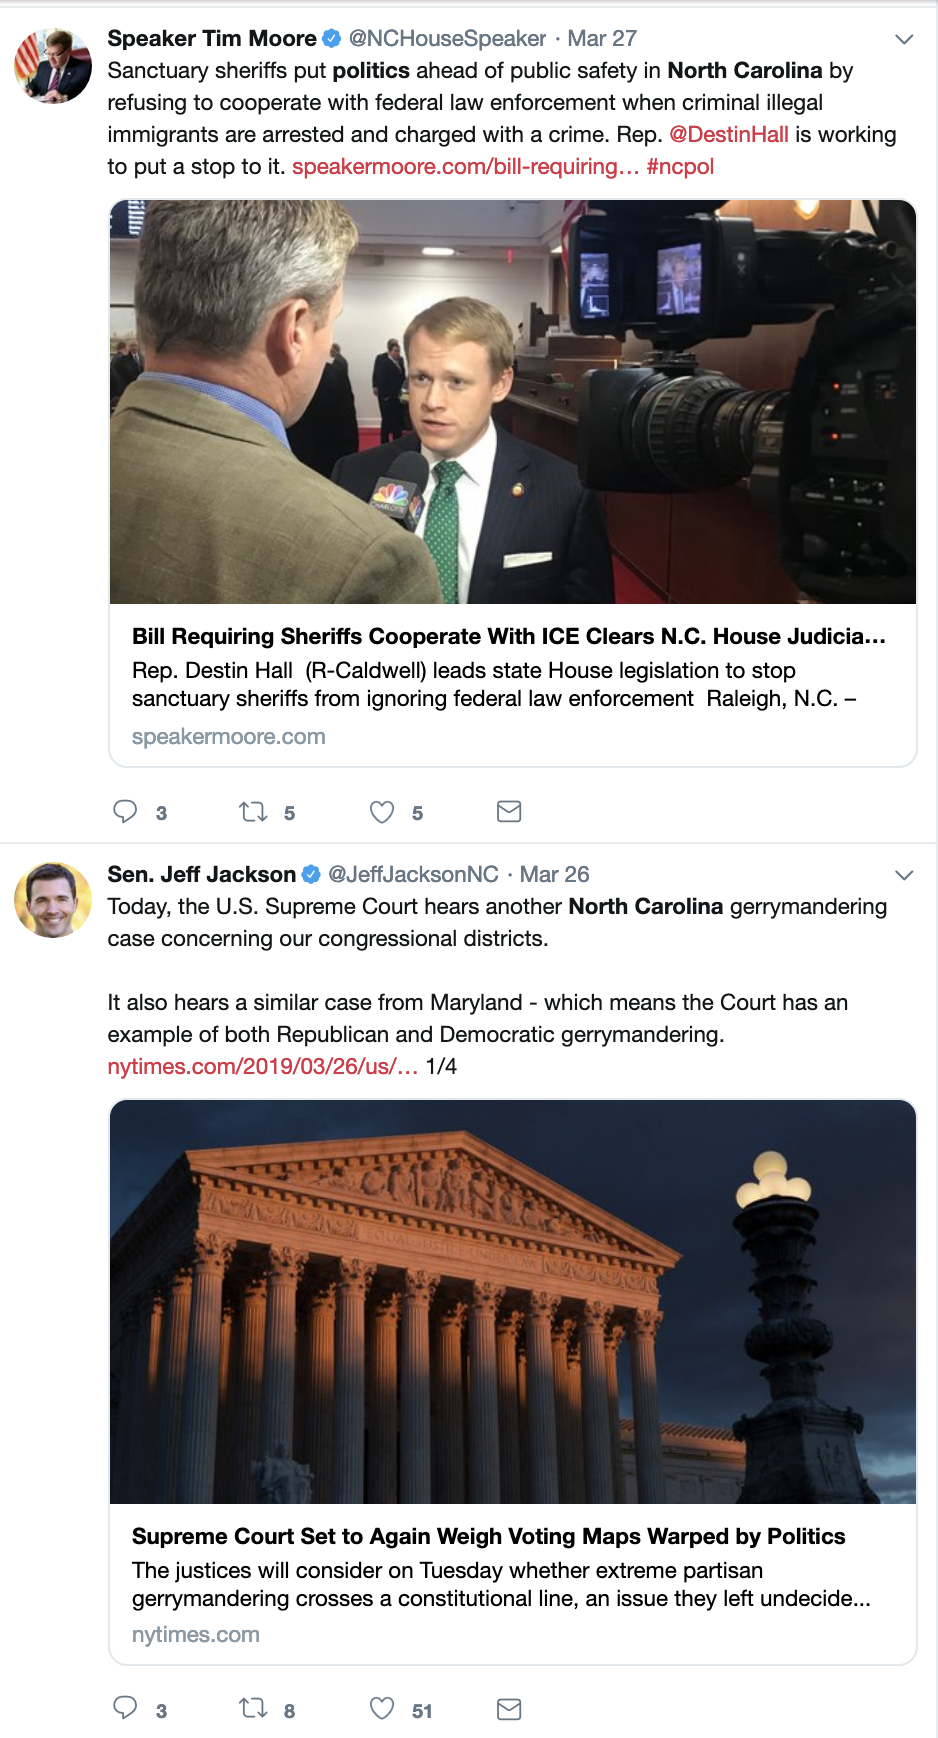 Screen-Shot-2019-04-02-at-3.04.45-PM BREAKING: Republican Party Chairman Indicted By The FBI Corruption Crime Donald Trump Election 2018 Politics Top Stories